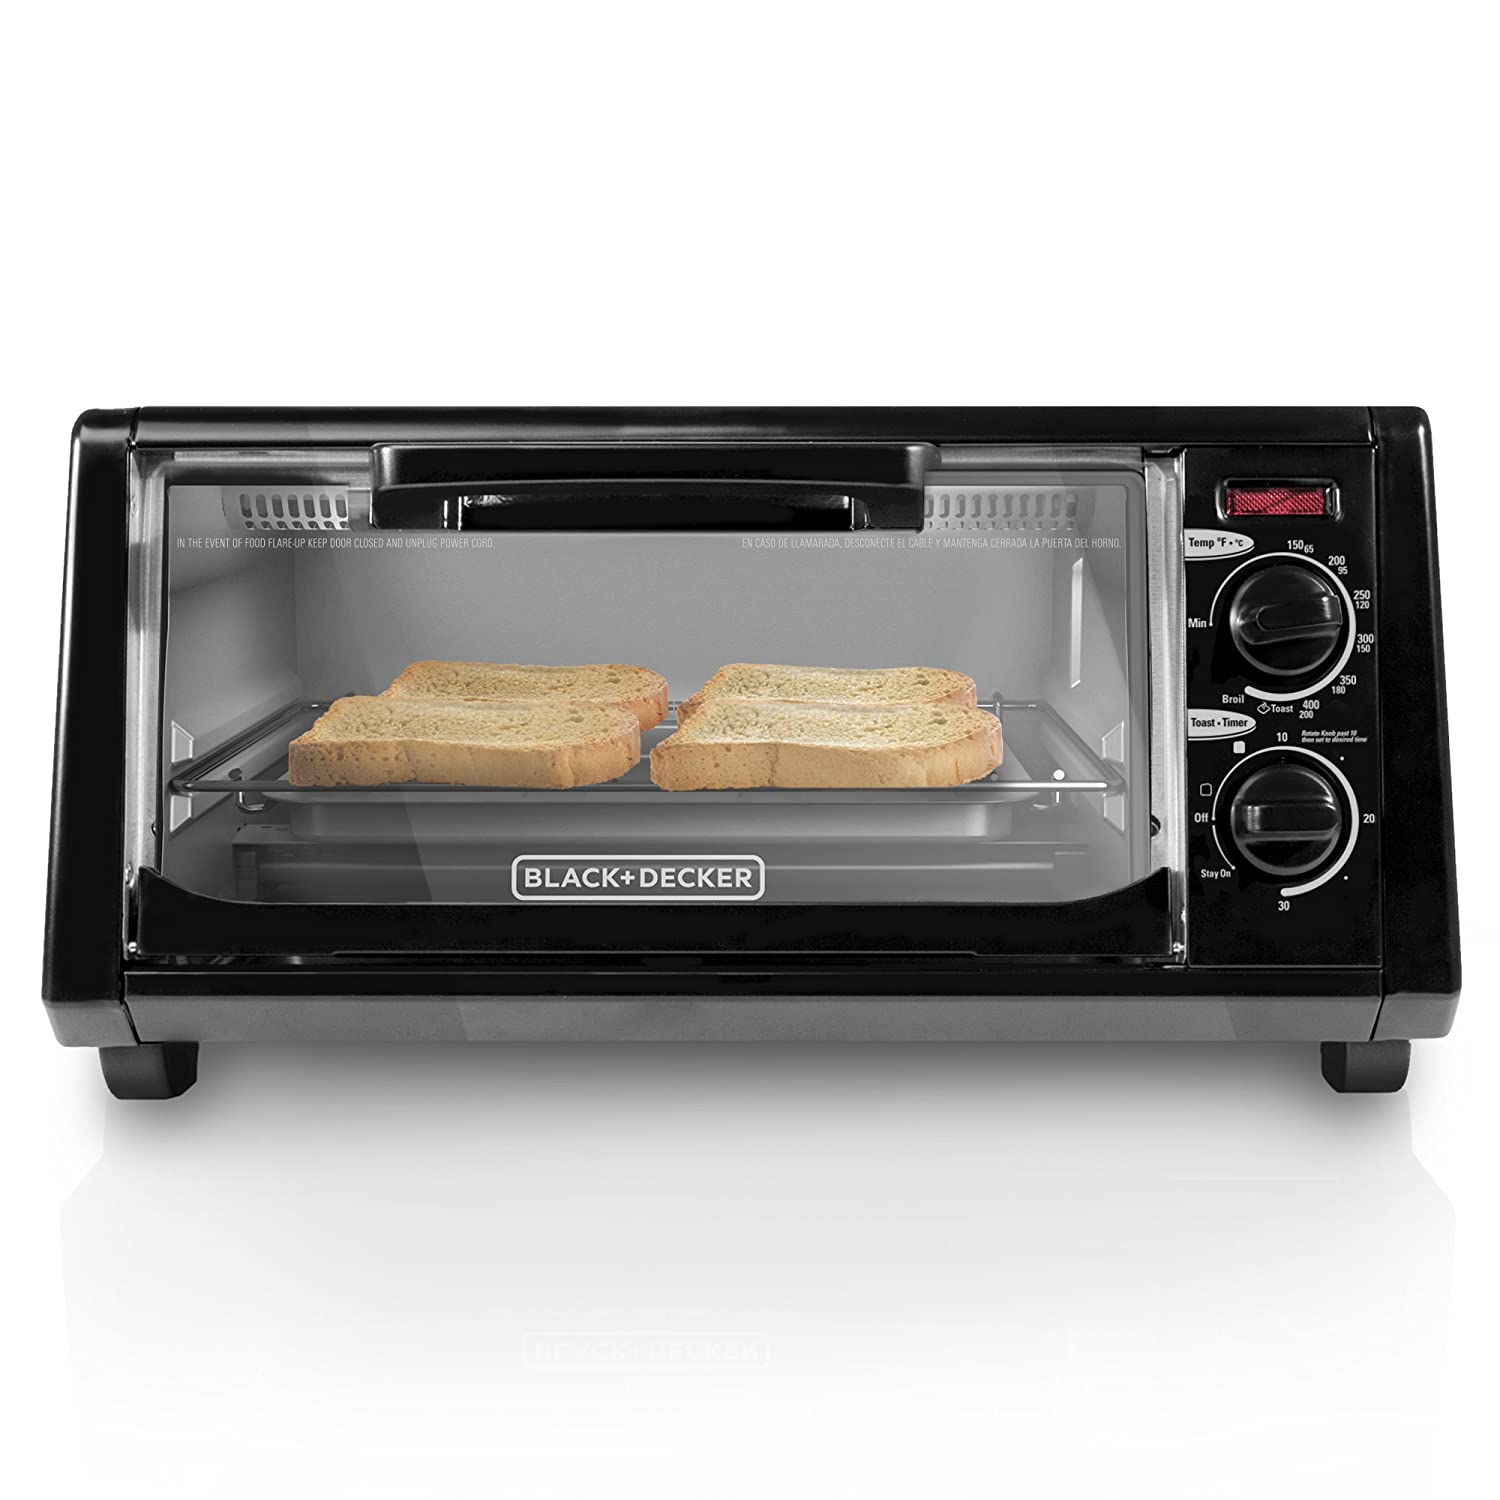 Amazon.com: BLACK+DECKER TO1200B 4 Slice Toaster Oven, Black: Kitchen & Dining